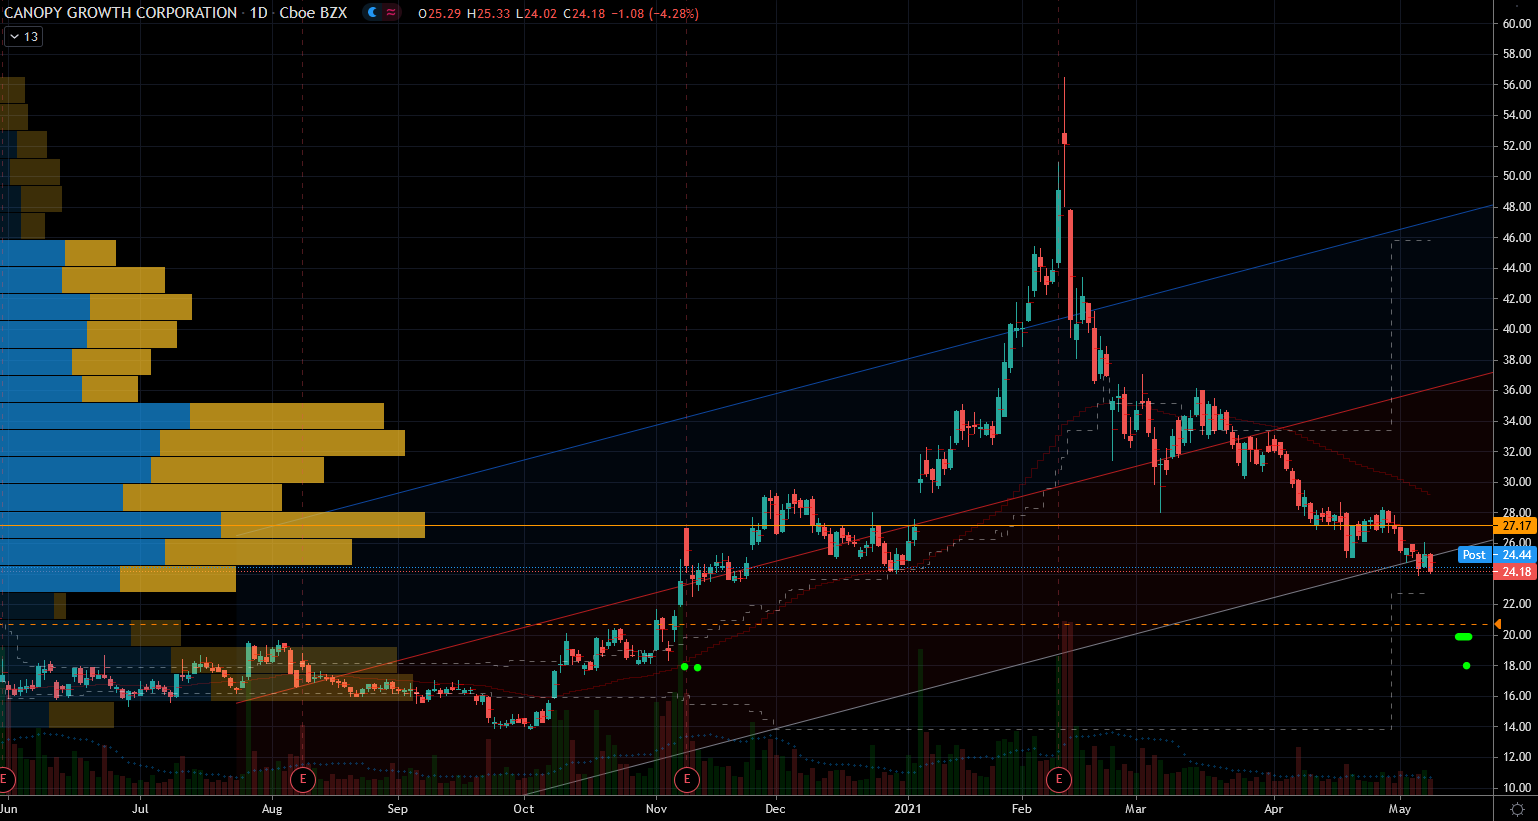 Canopy Growth (CGC) Stock Chart Showing Potential Support Zone